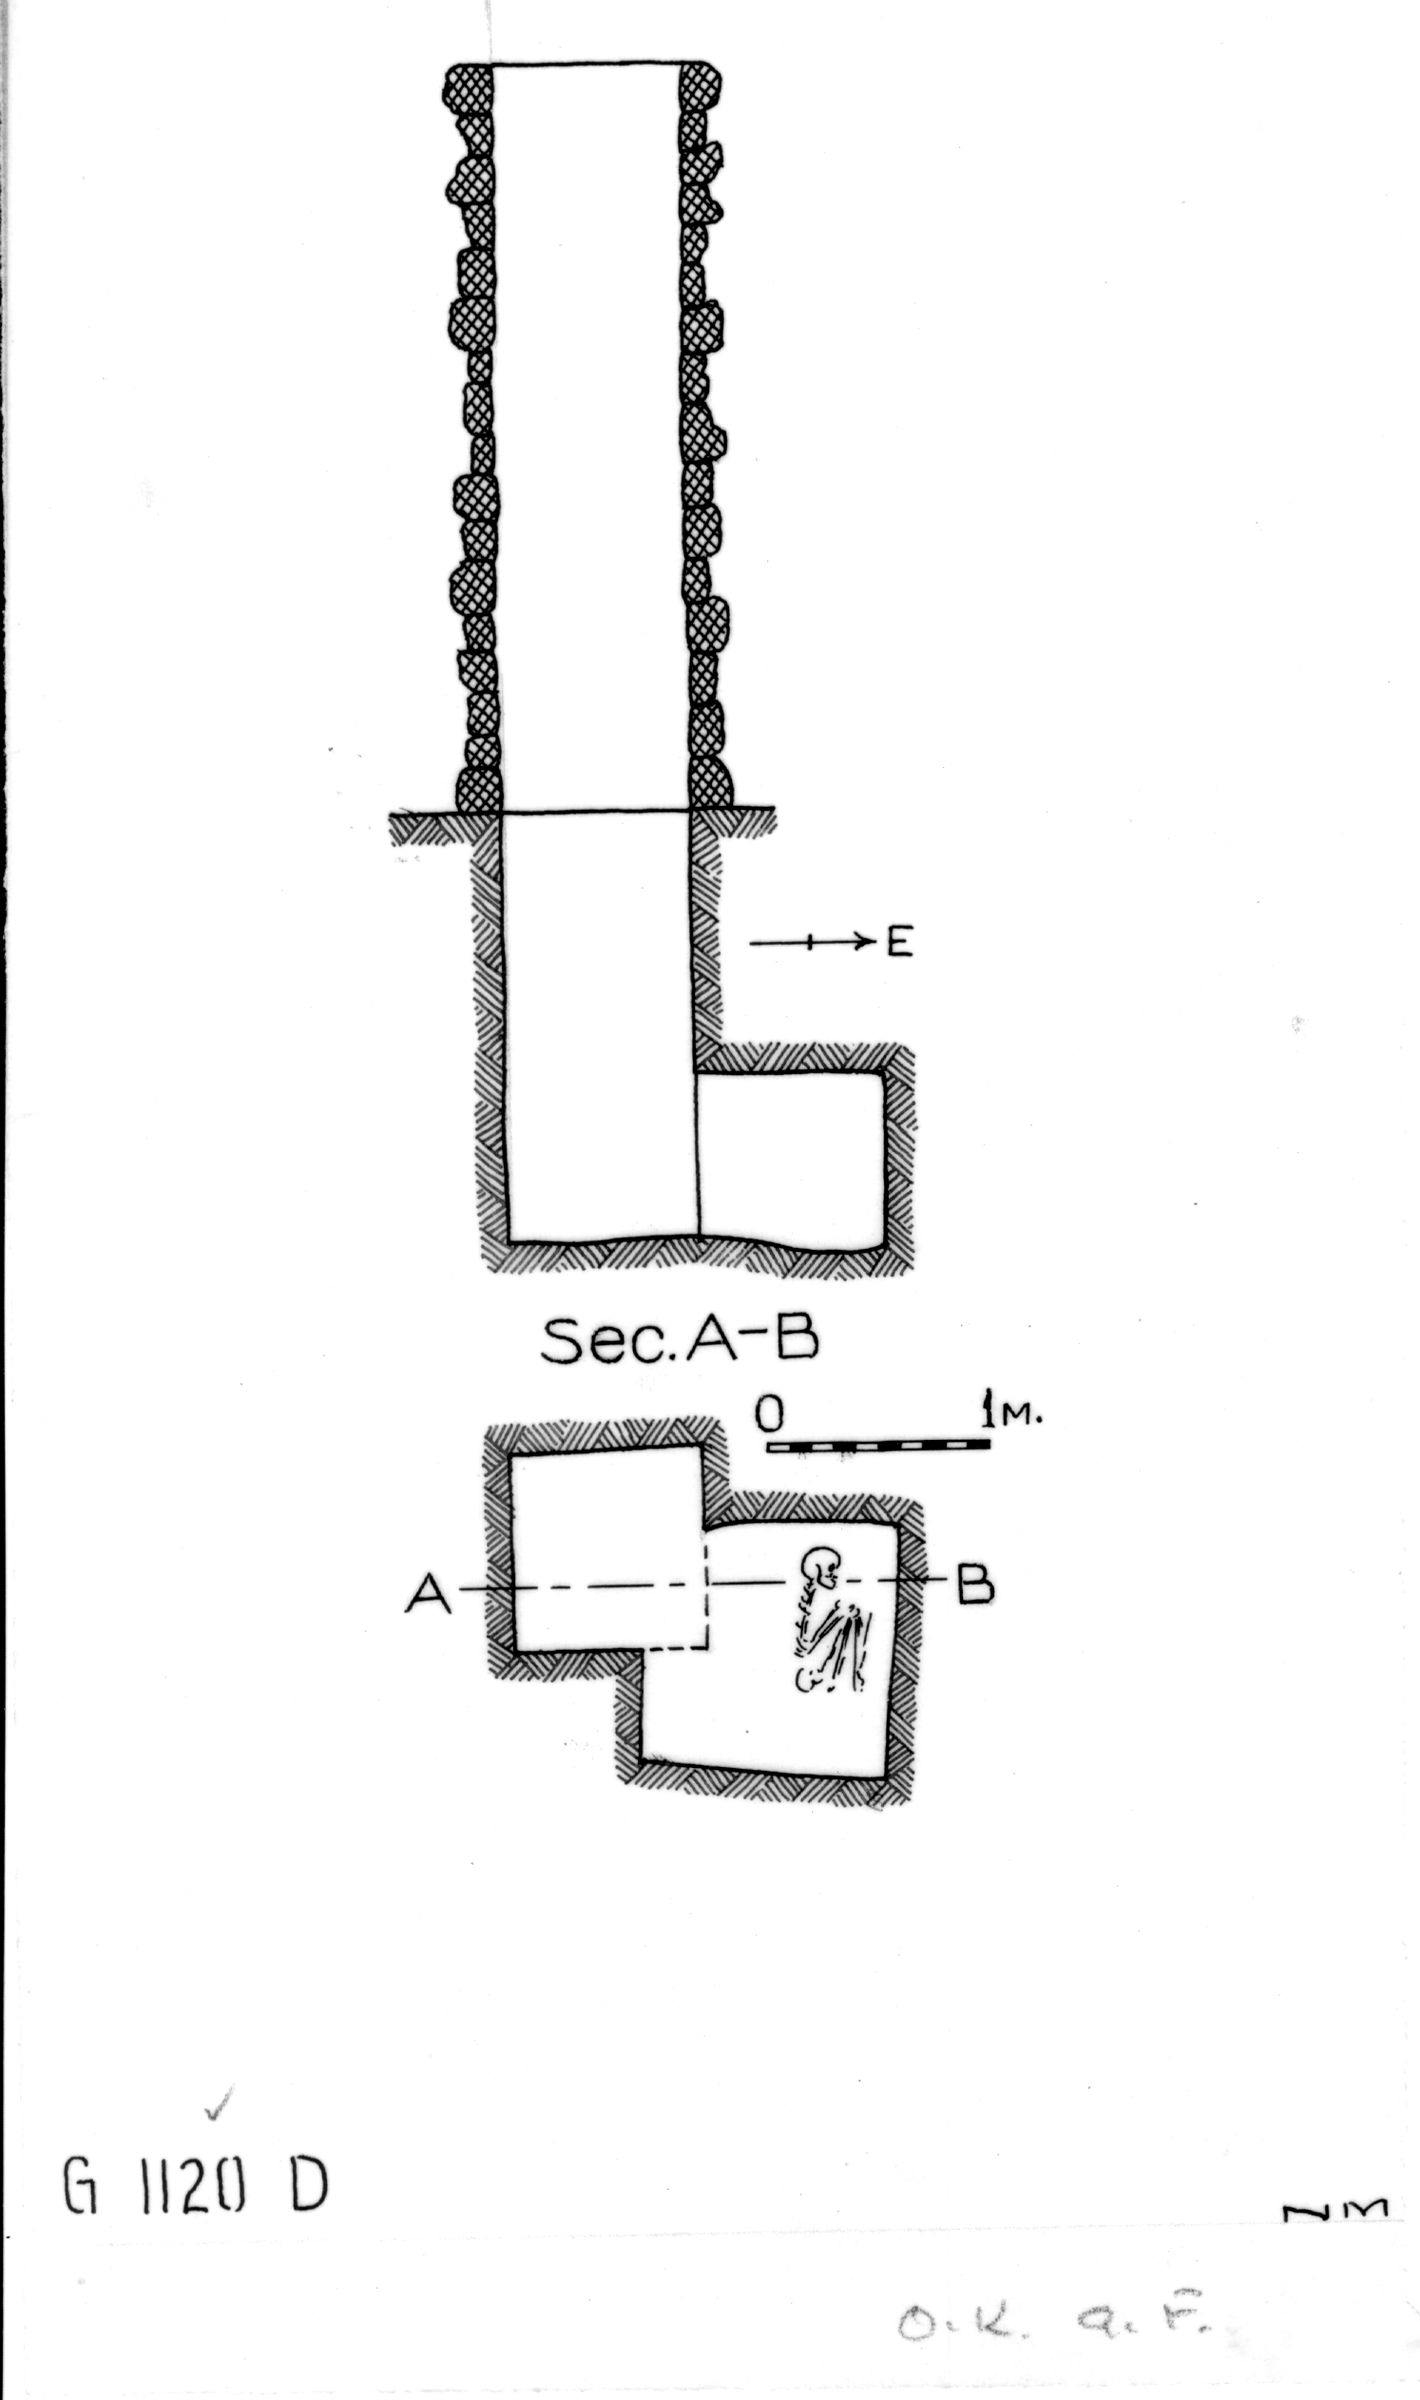 Maps and plans: G 1120, Shaft D